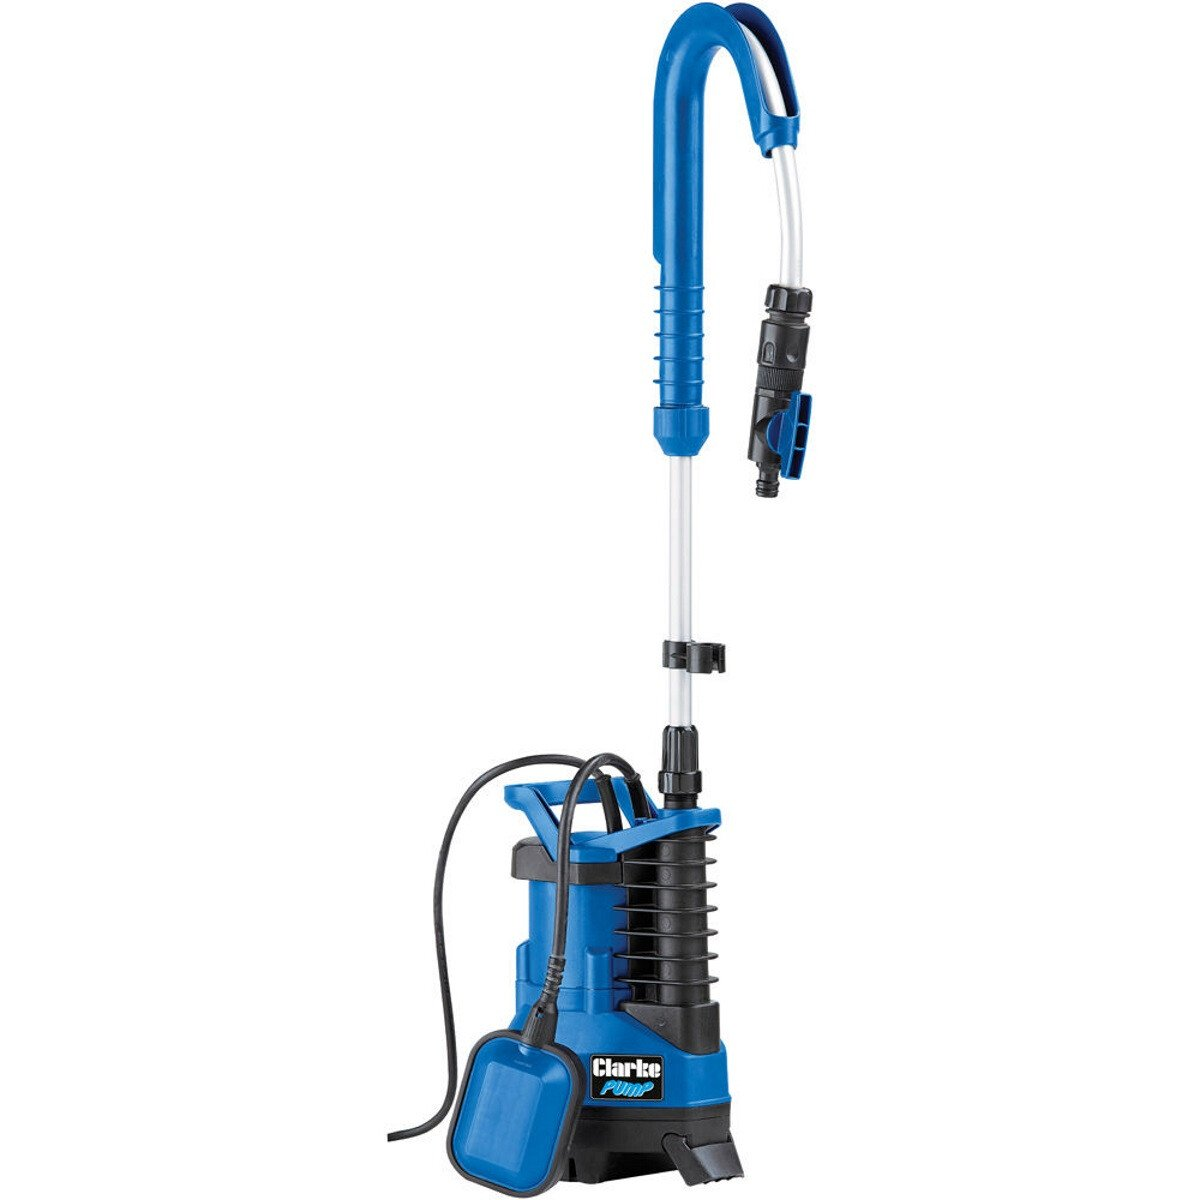 Clarke CWBP300 Submersible Water Butt Pump 400W 230V 7230400